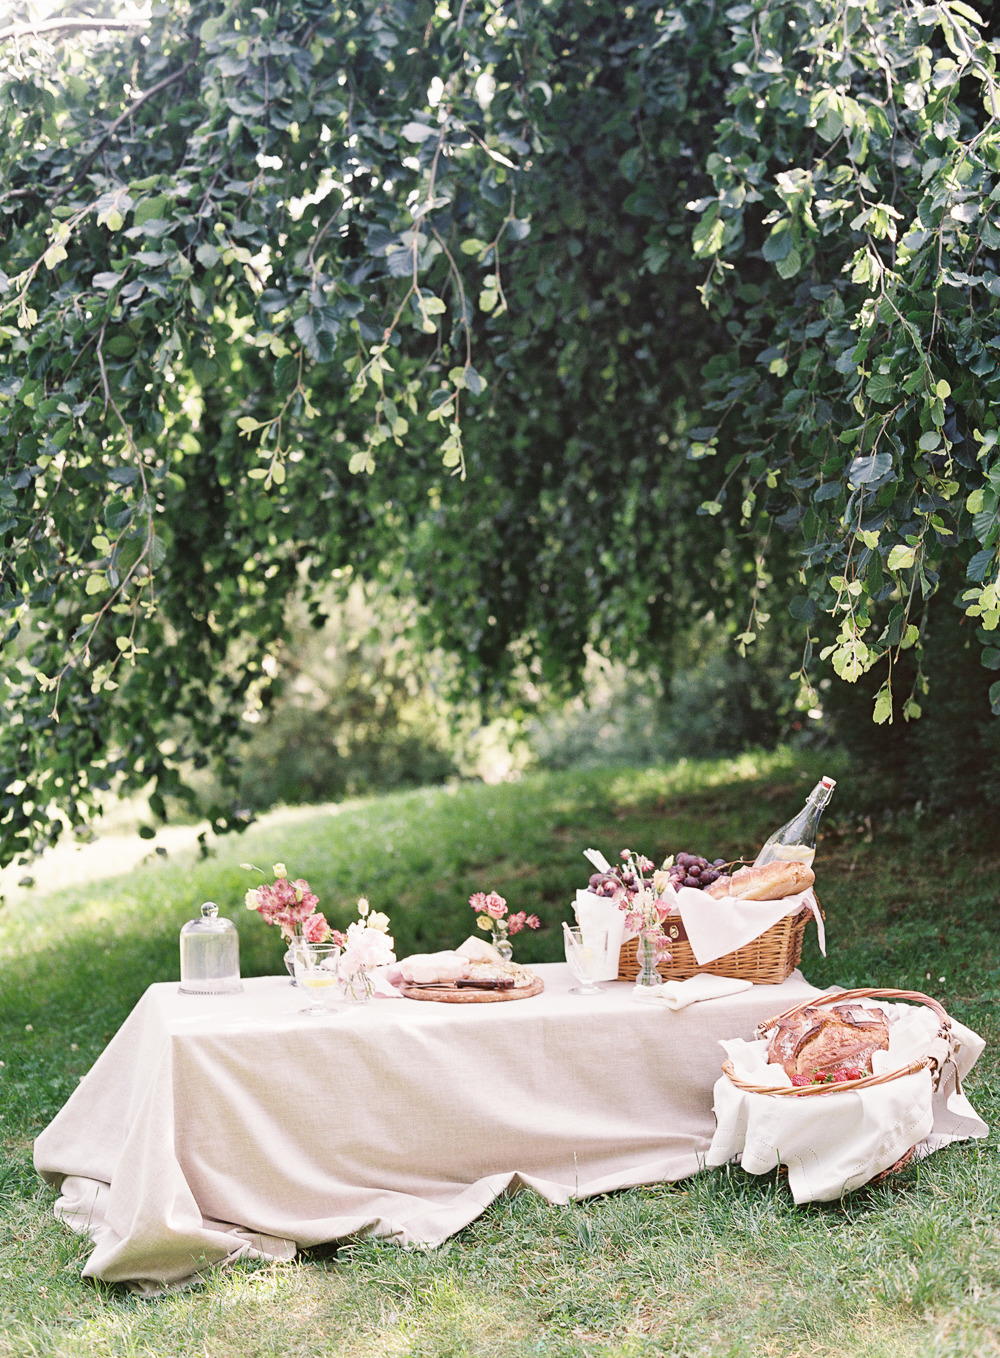 design-the-perfect-picnic